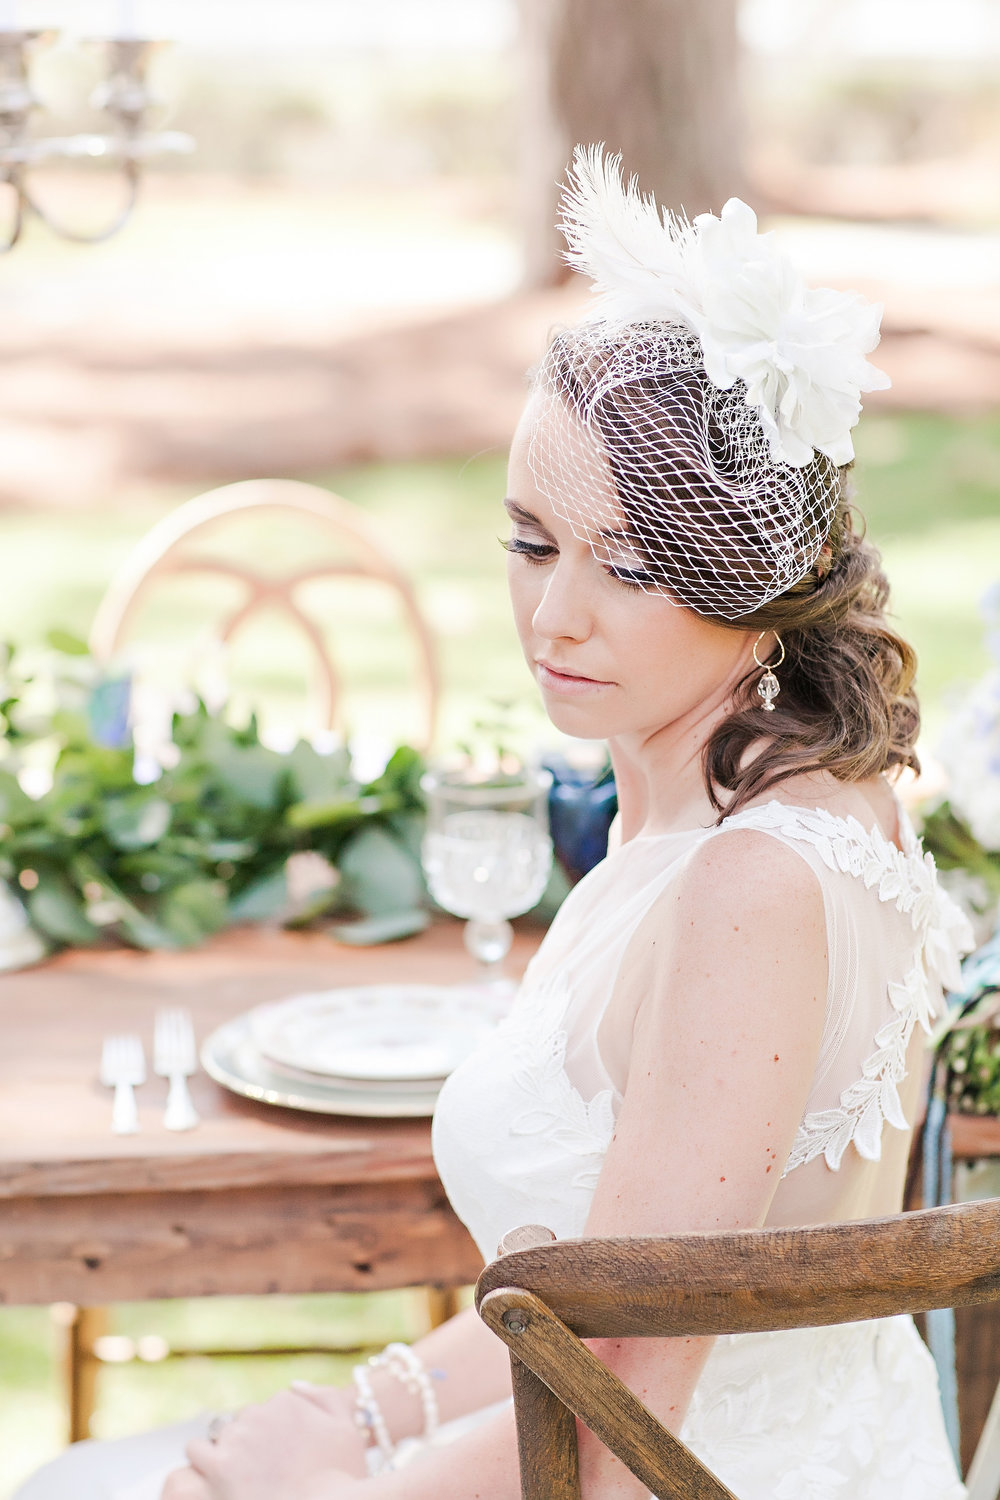 heather-kline-photography-oldfield-river-club-wedding-savannah-wedding-photographer-ti-adora-ivory-and-beau-bridal-boutique-savannah-wedding-dresses-savannah-bridal-boutique-savannah-bridal-gowns-bridal-accessories-savannah-wedding-planner-13.jpg